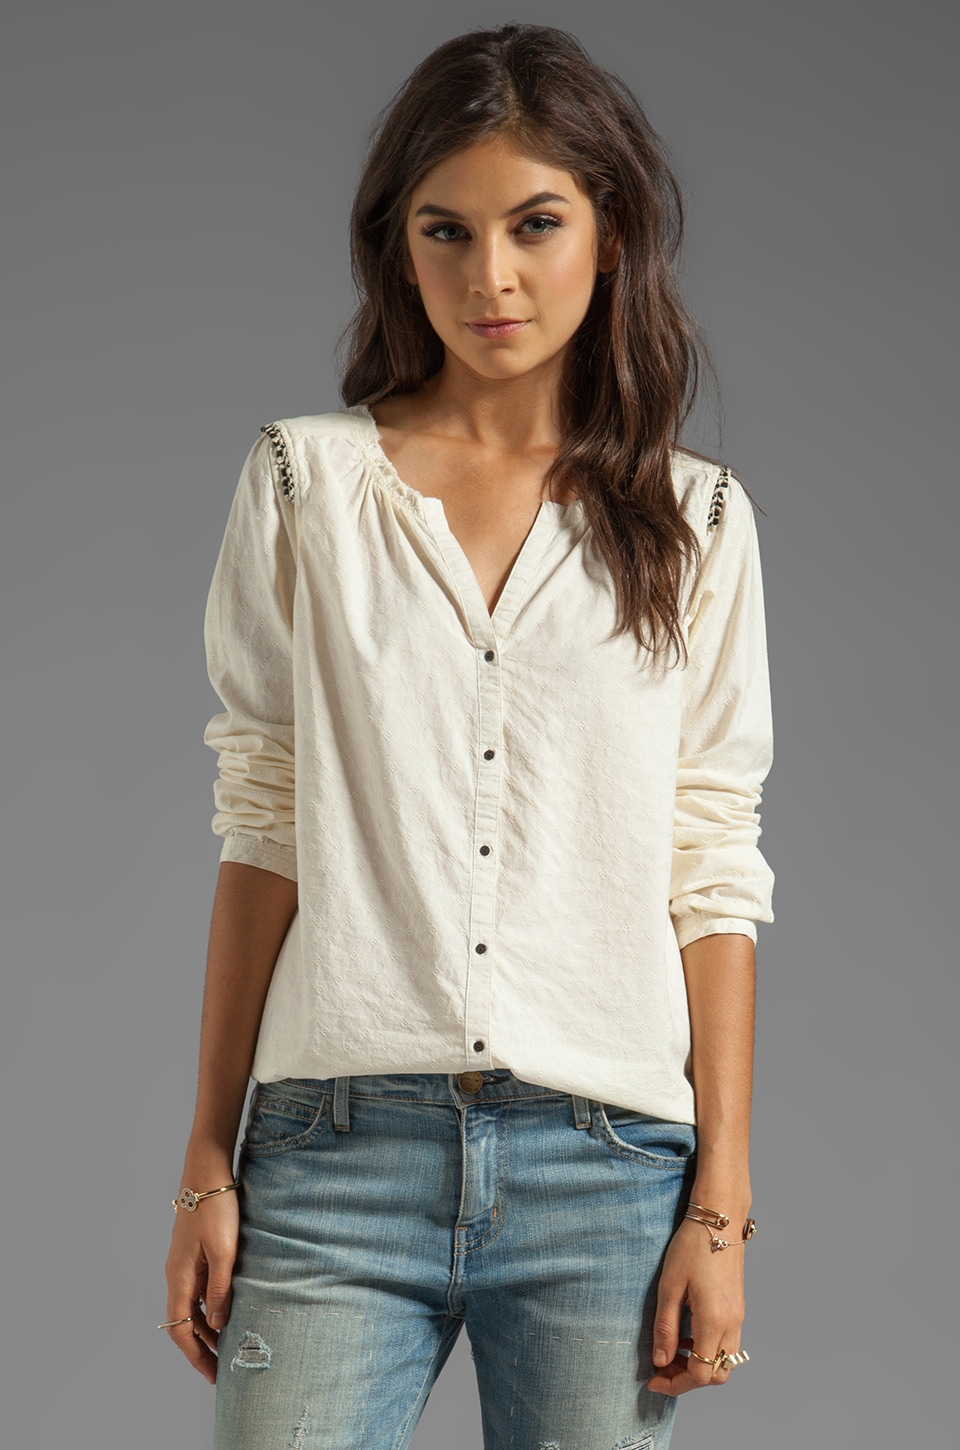 Maison Scotch Woven Blouse in Cream